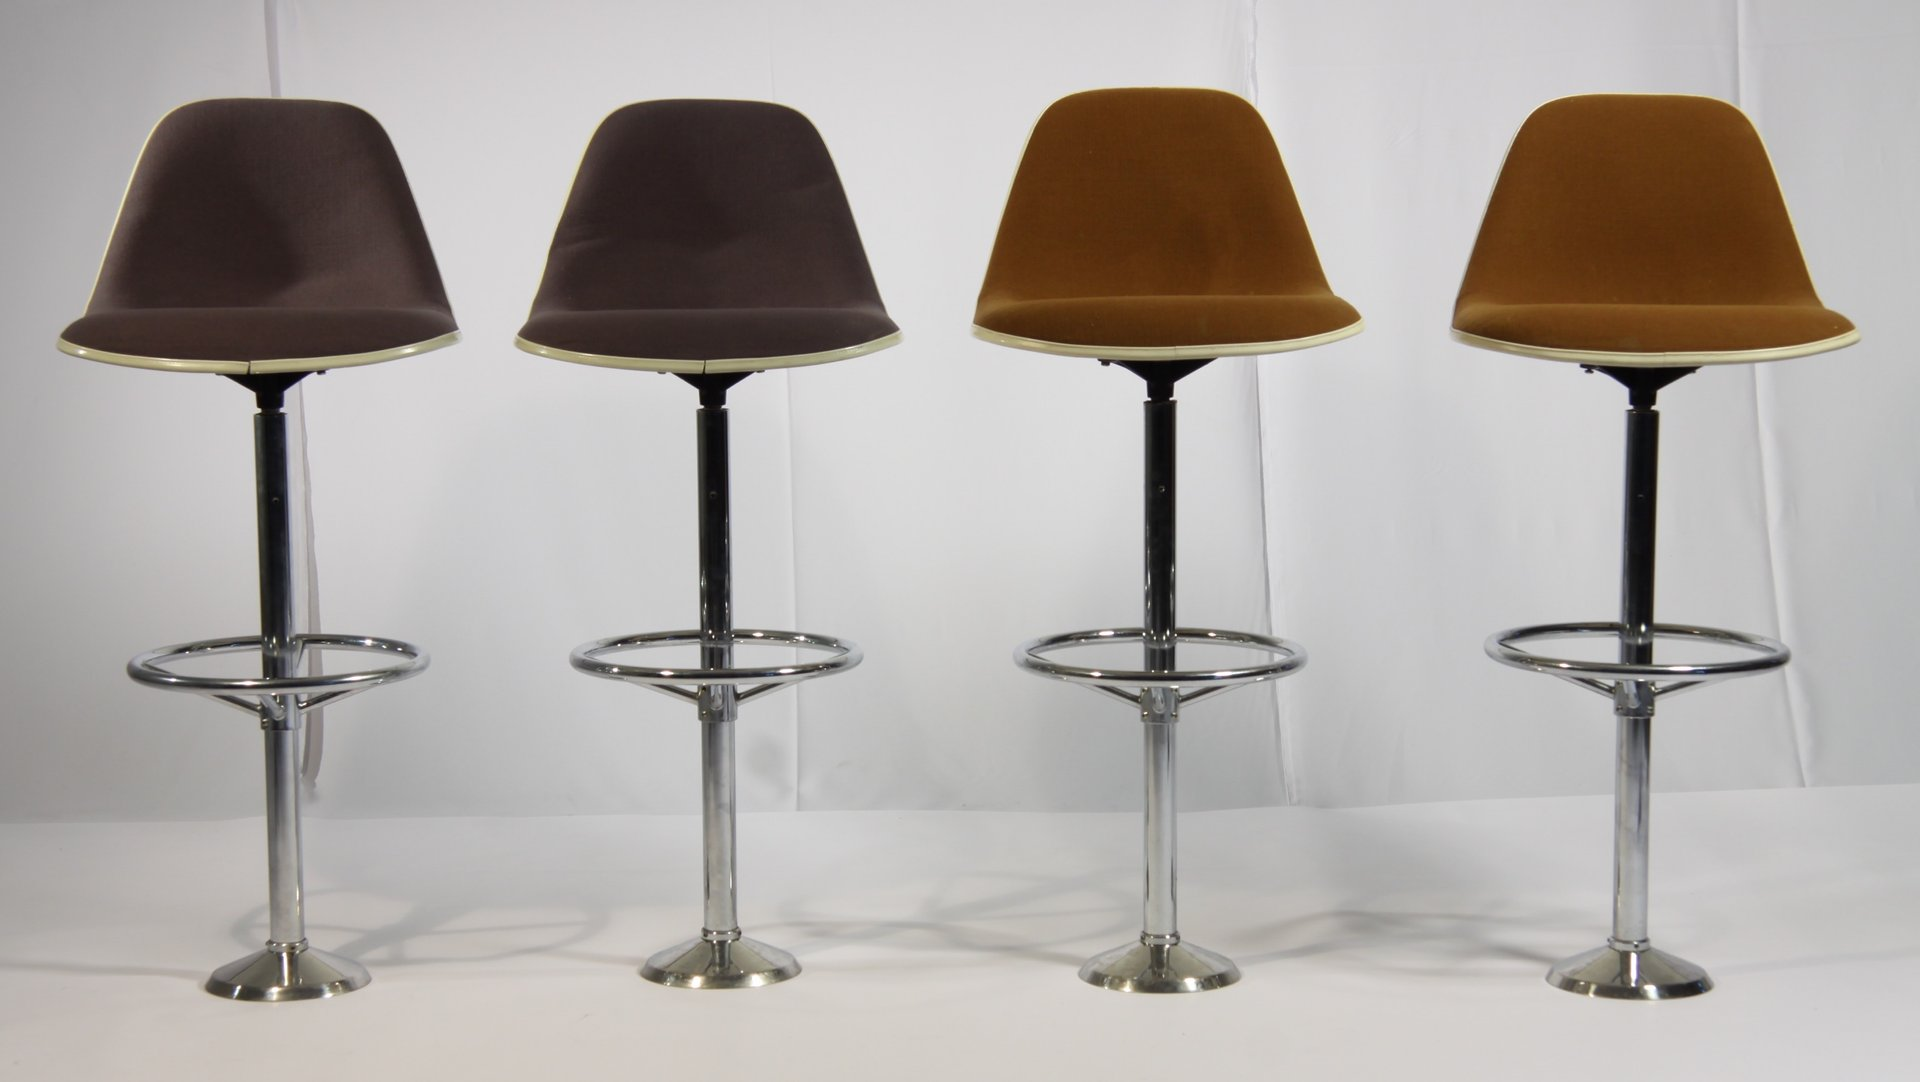 Vintage bar stools by ray charles eames for herman miller set of 4